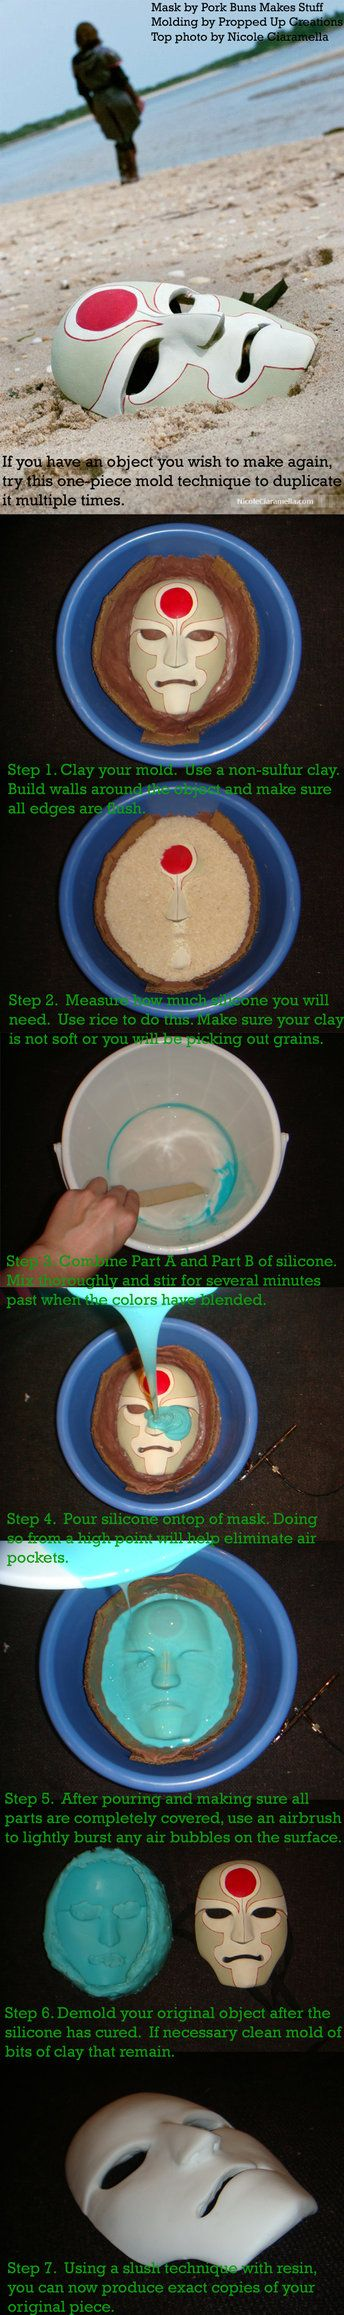 One-part Silicone Mold Making Tutorial by proppedupcreations on deviantART